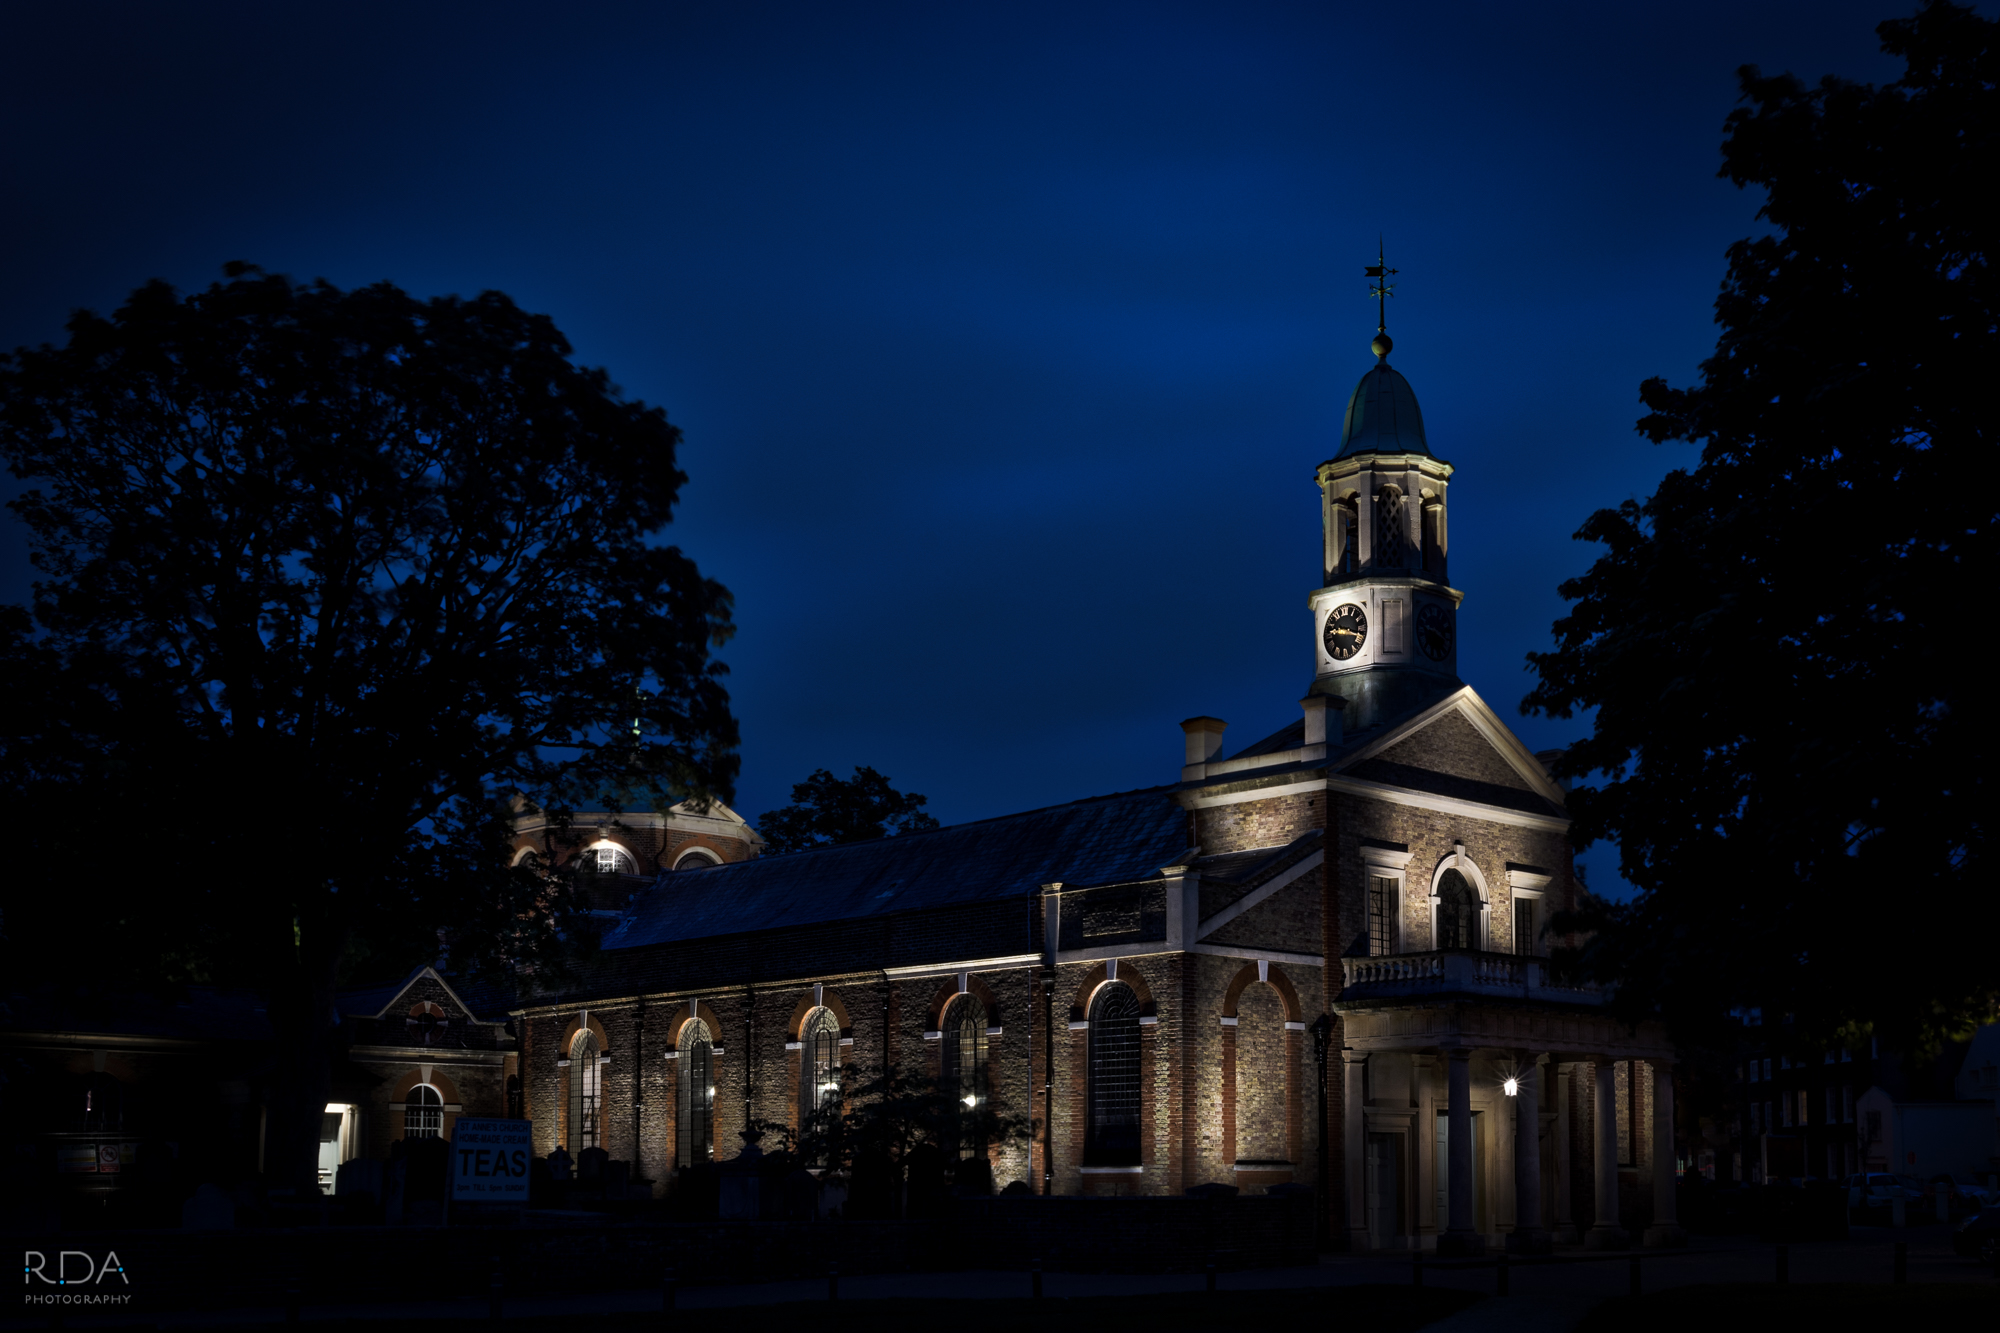 St. Anne's Kew Church at night